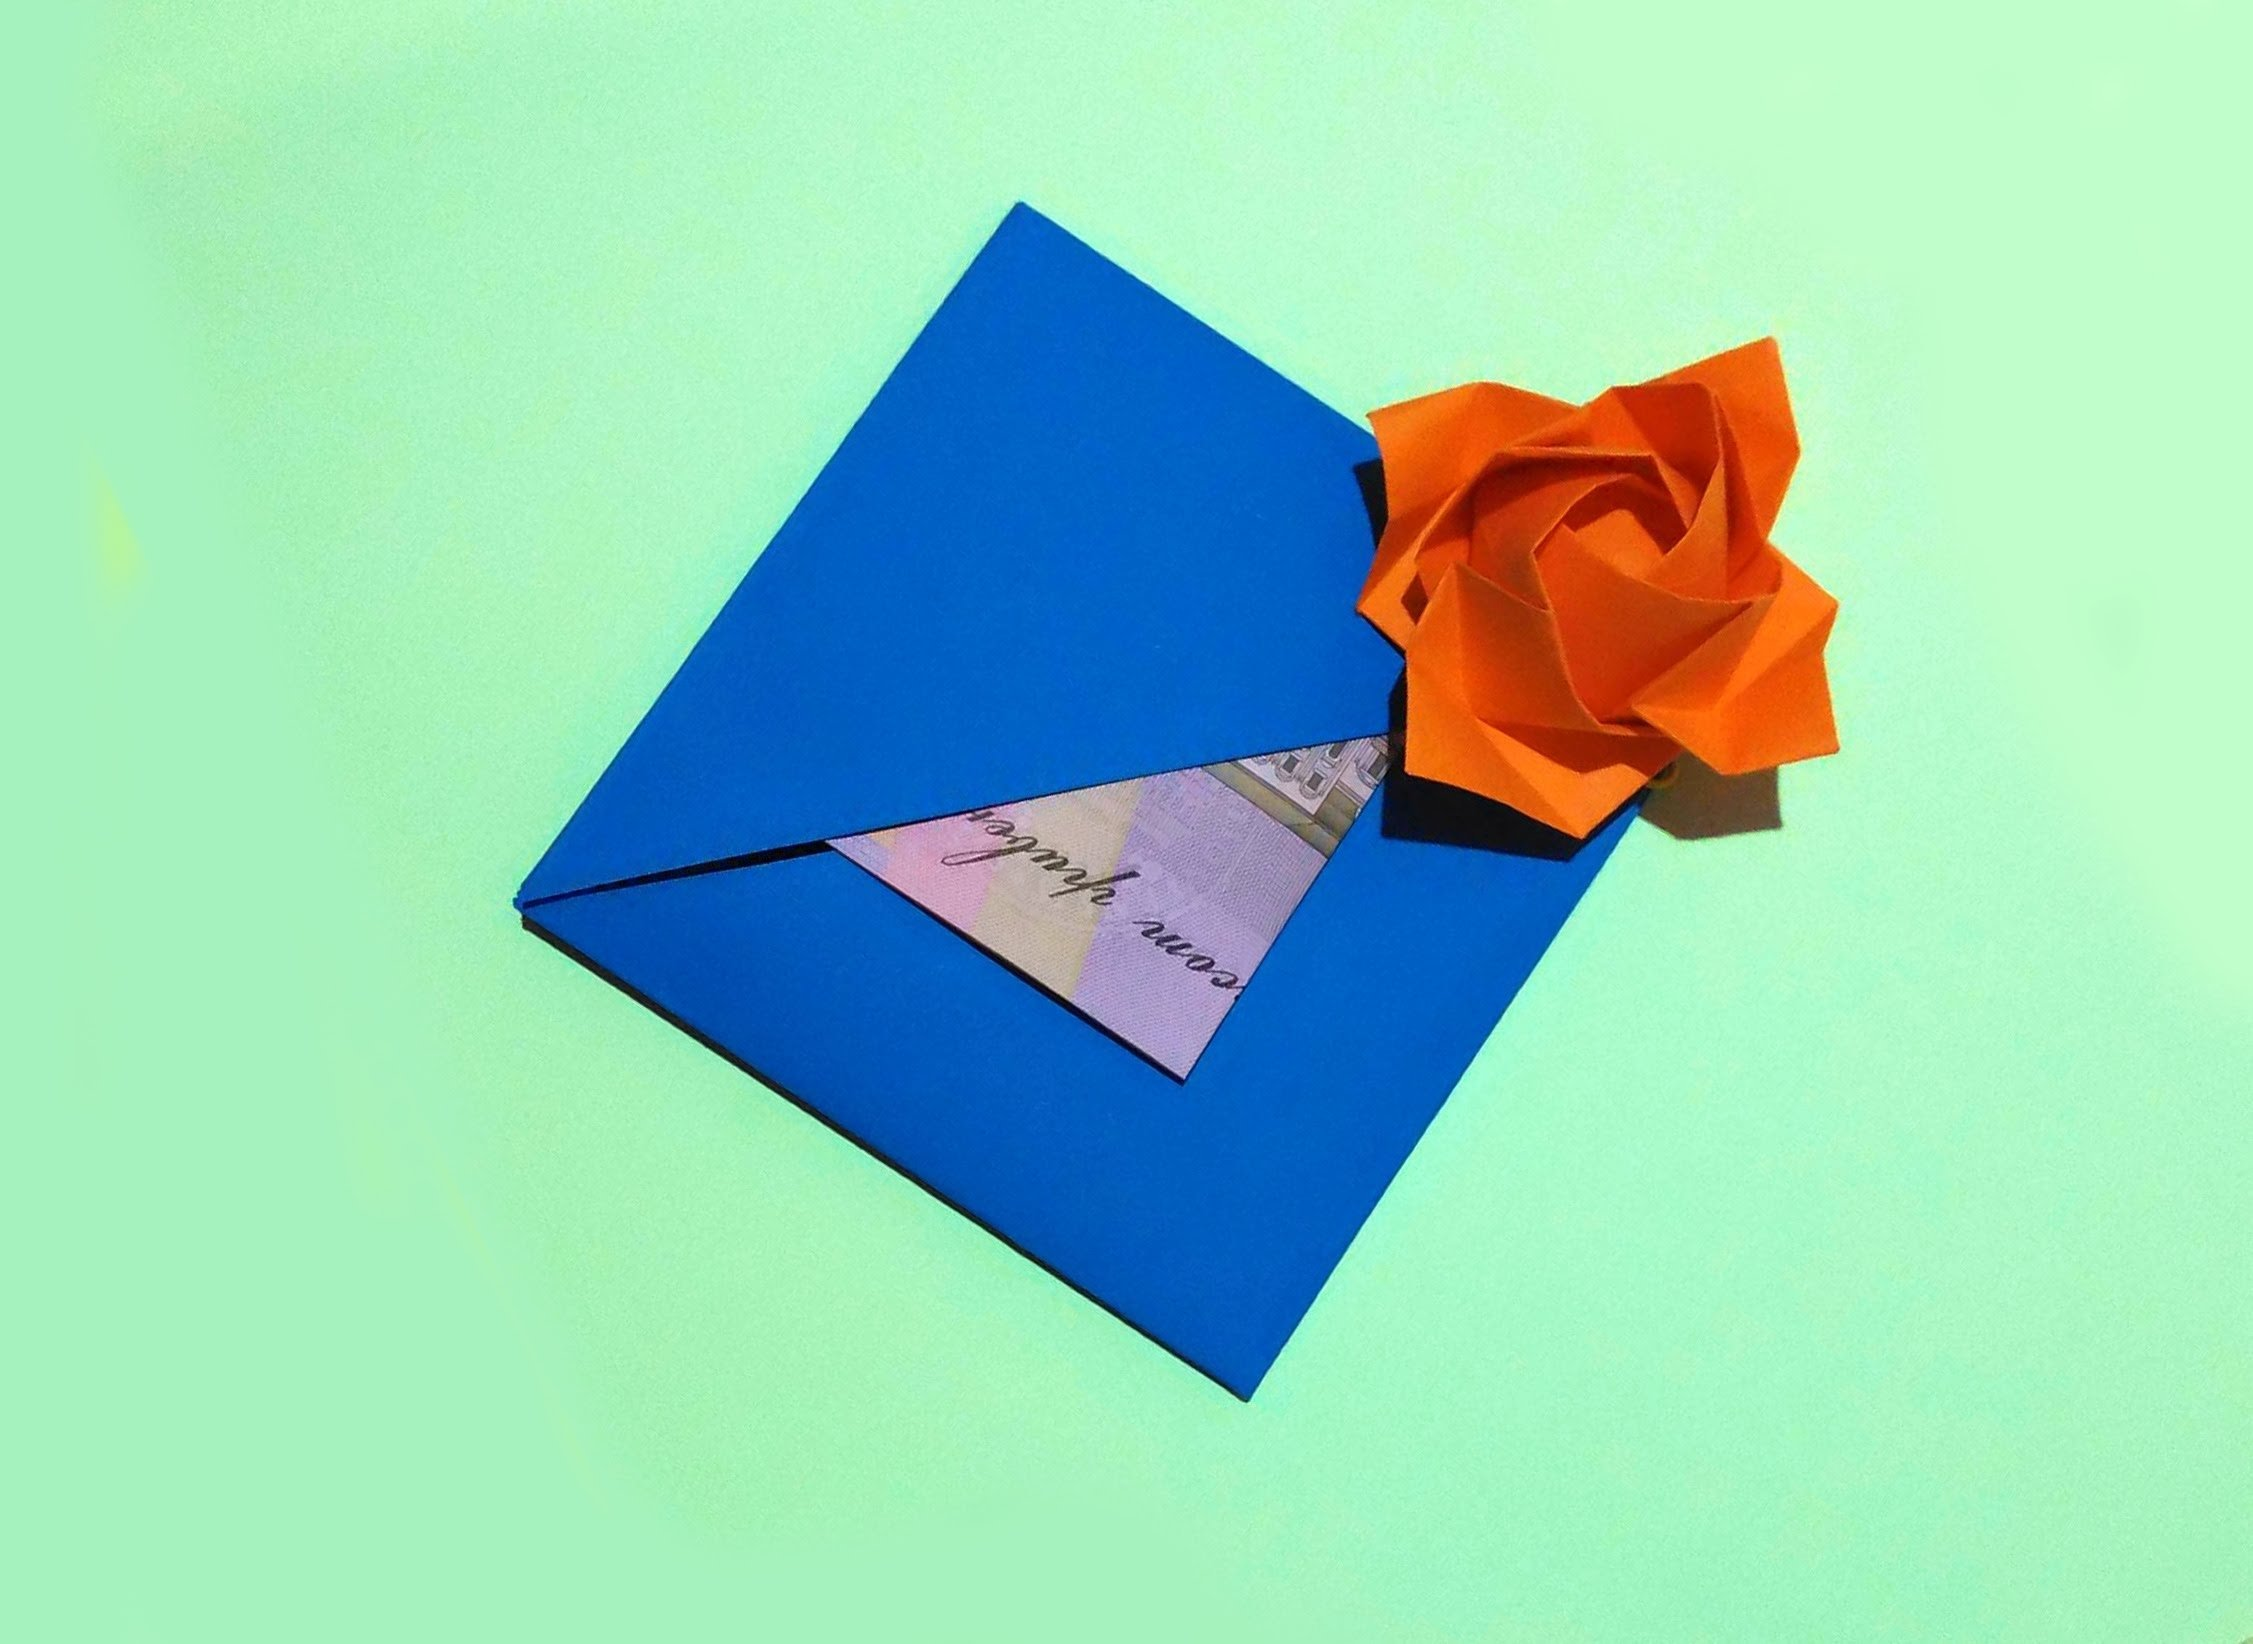 10 Elegant Gift Card Ideas For Women easy gift card with flower and secret message inside origami card 2020